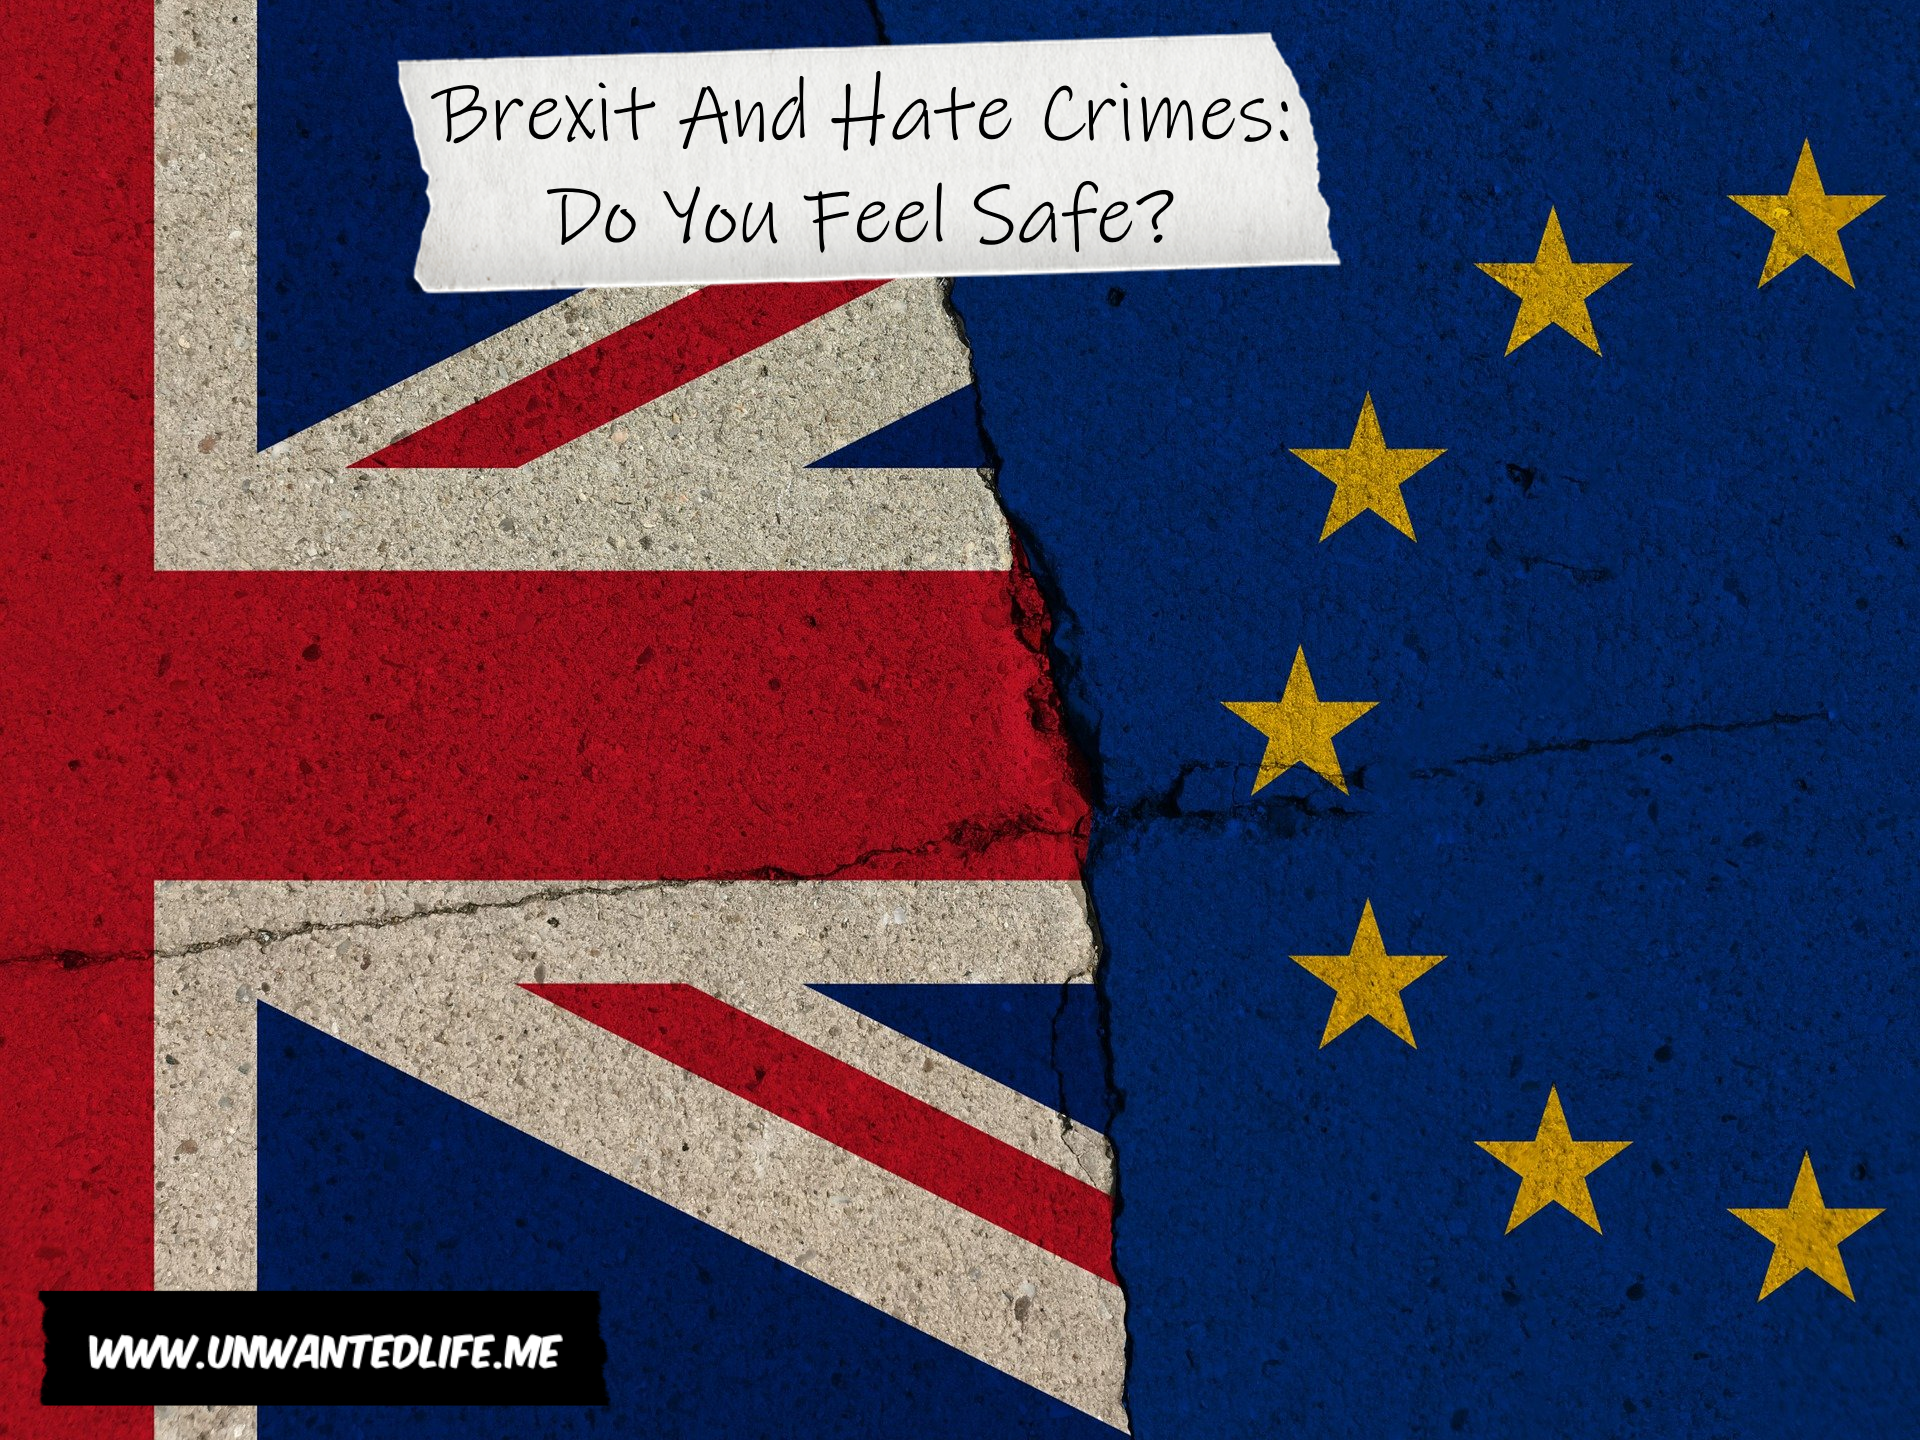 The image is of the Union Jack and the EU flag smashed together to represent - Brexit And Hate Crimes: Do You Feel Safe?